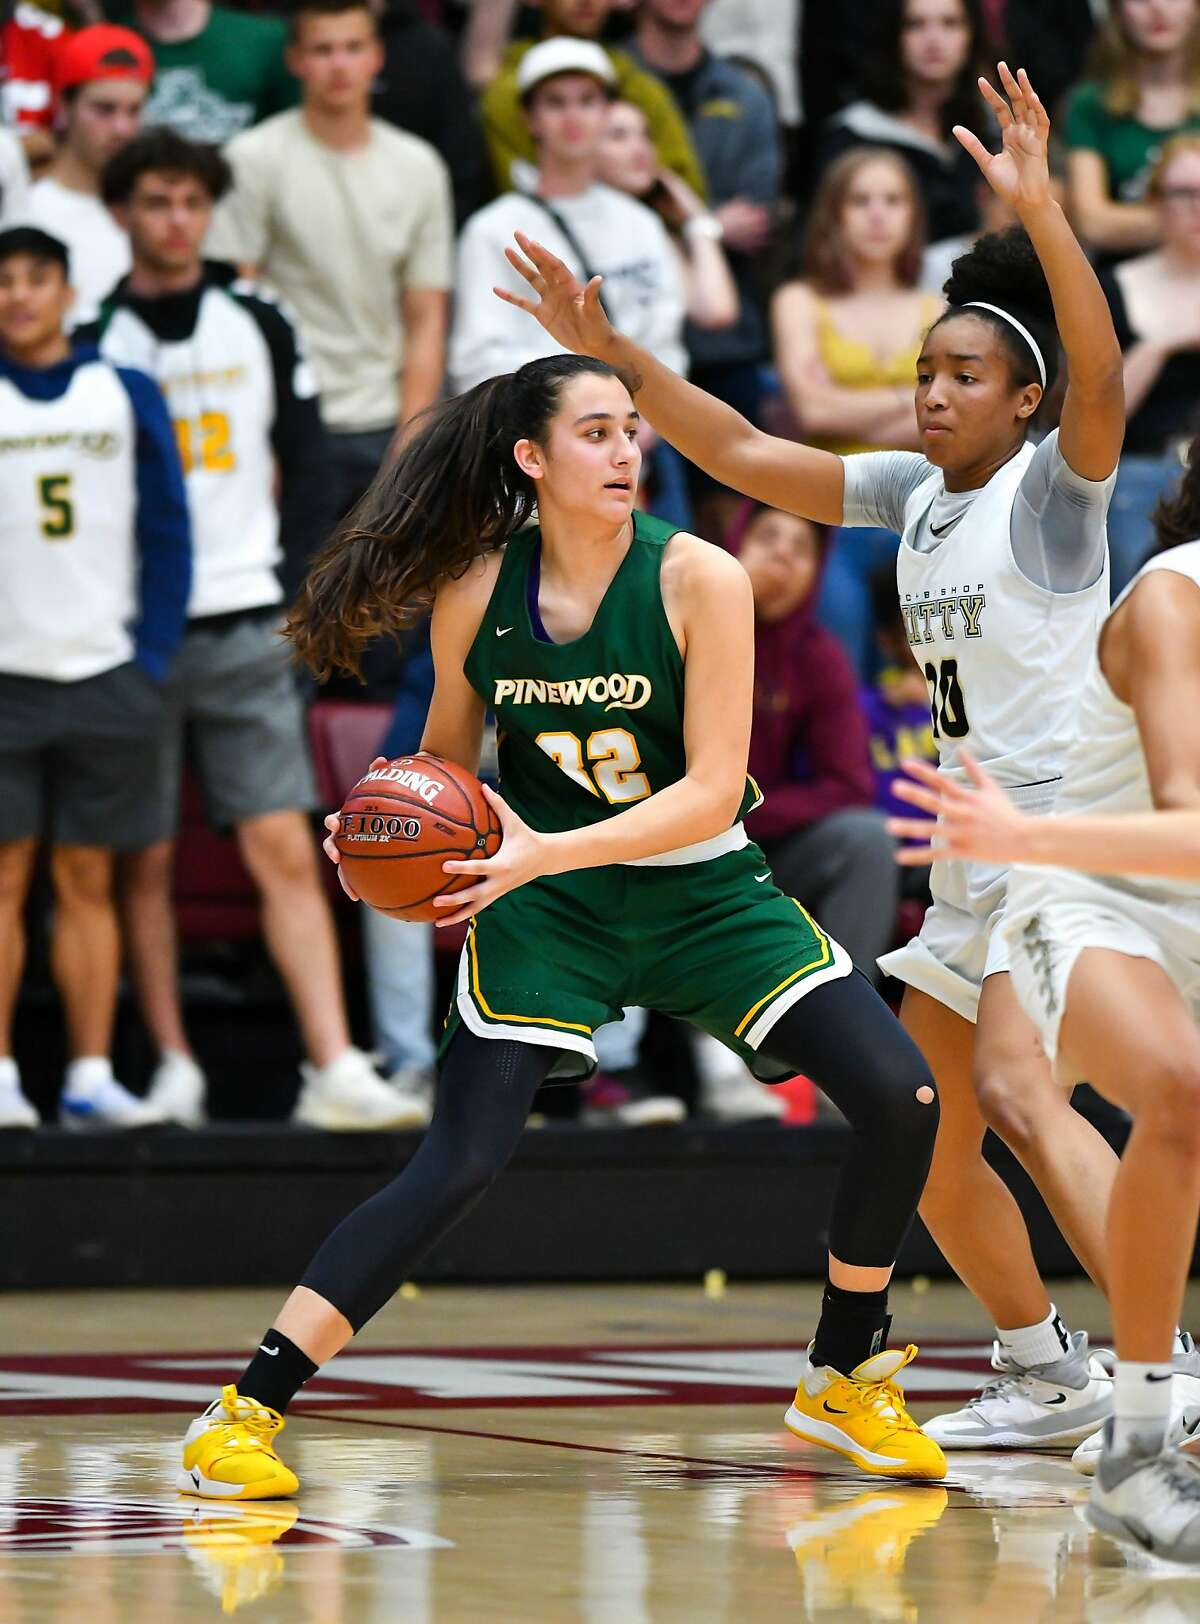 Maia Garcia, shown in a previous game, had 13 points and nine rebounds in Pinewood-Los Altos' 50-48 victory over Mitty for the Central Coast Section Open Division championship on Friday, June 11, 2021.